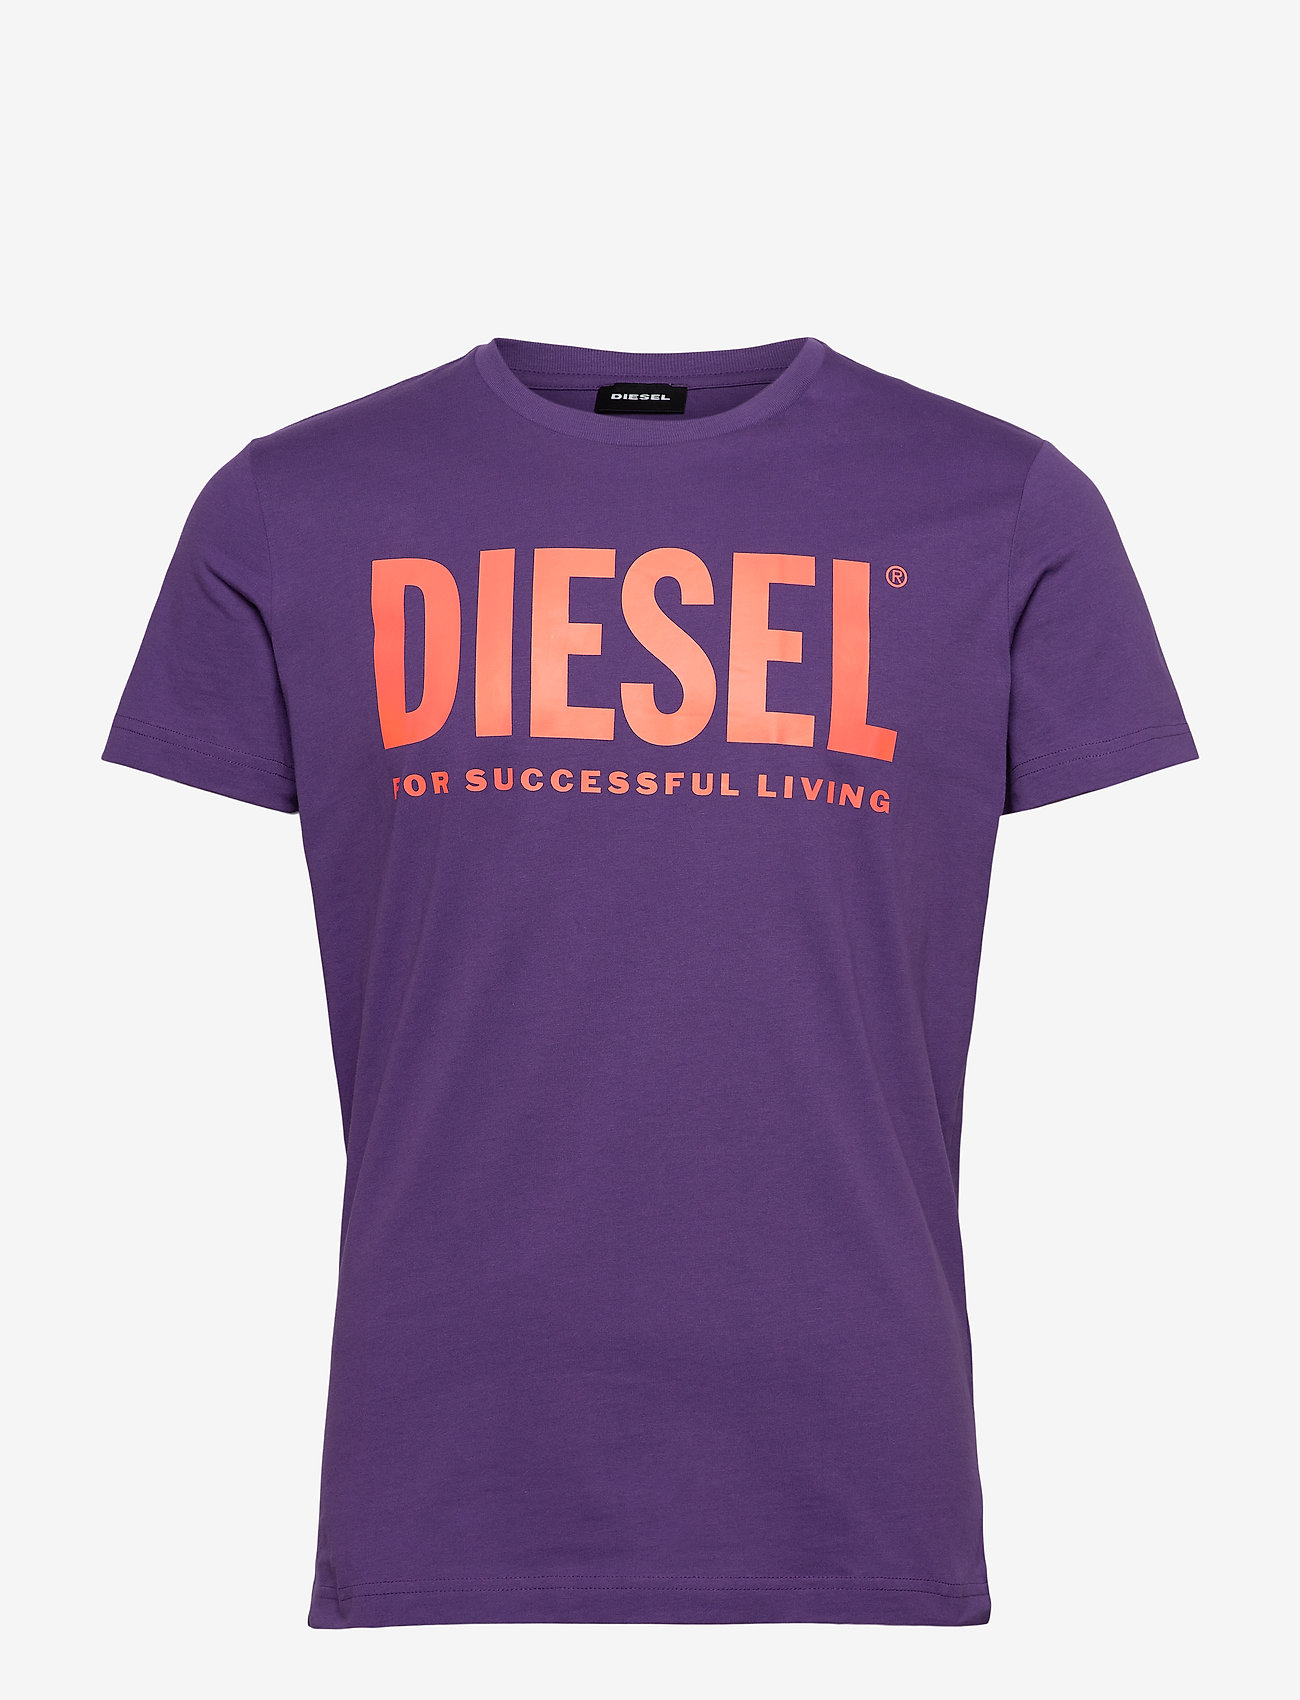 Diesel Men - T-DIEGO-LOGO T-SHIRT - short-sleeved t-shirts - violet - 0